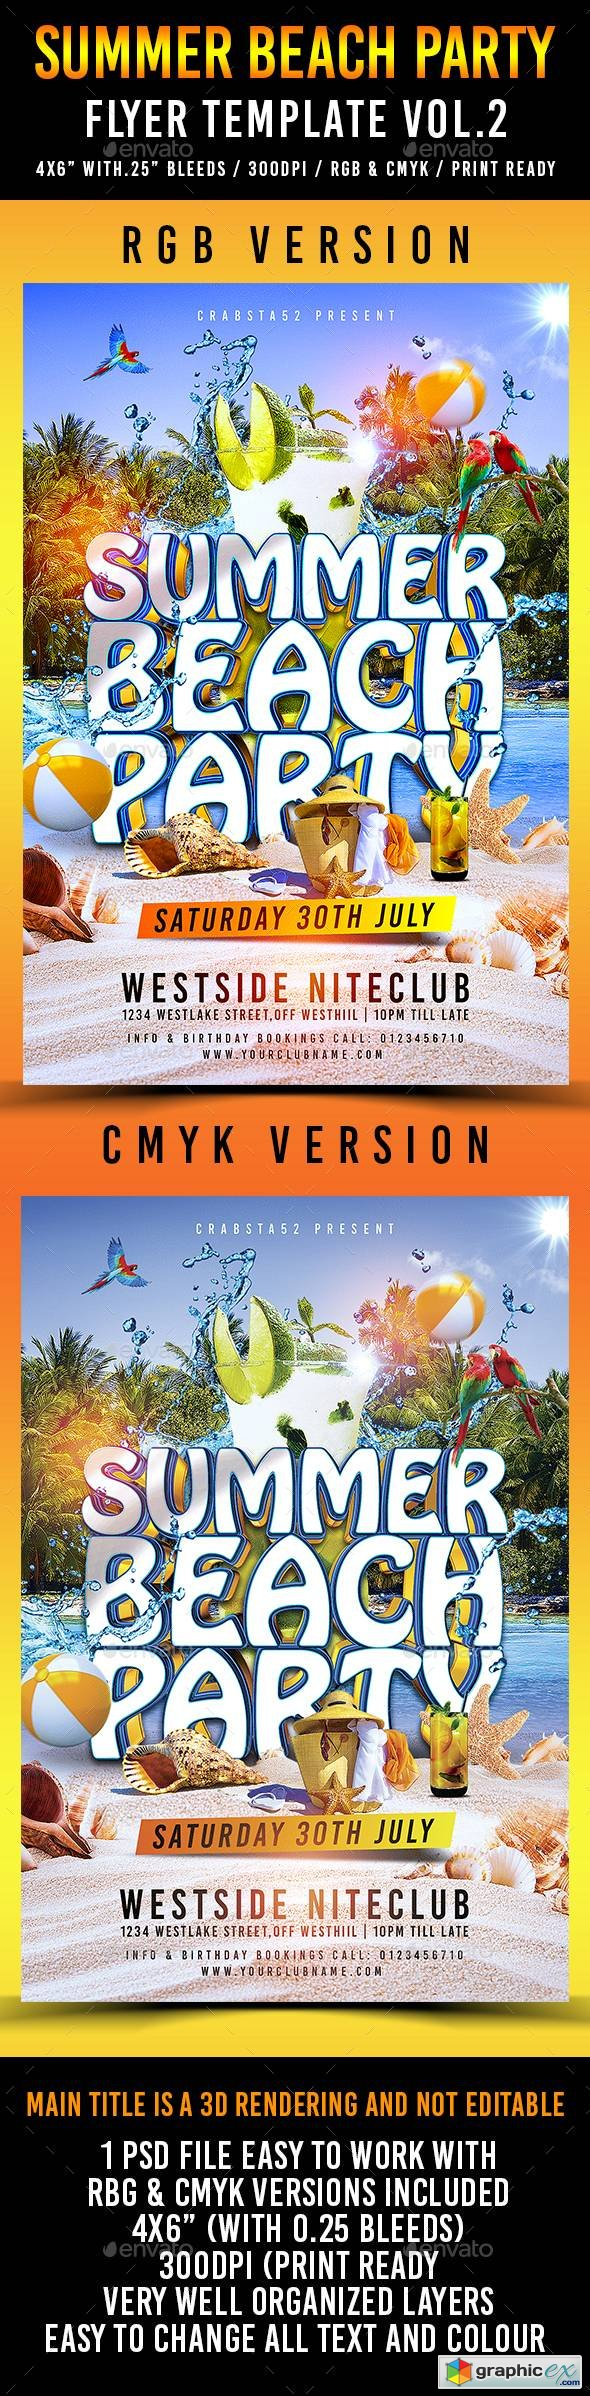 Summer Beach Party Flyer Template Vol.2